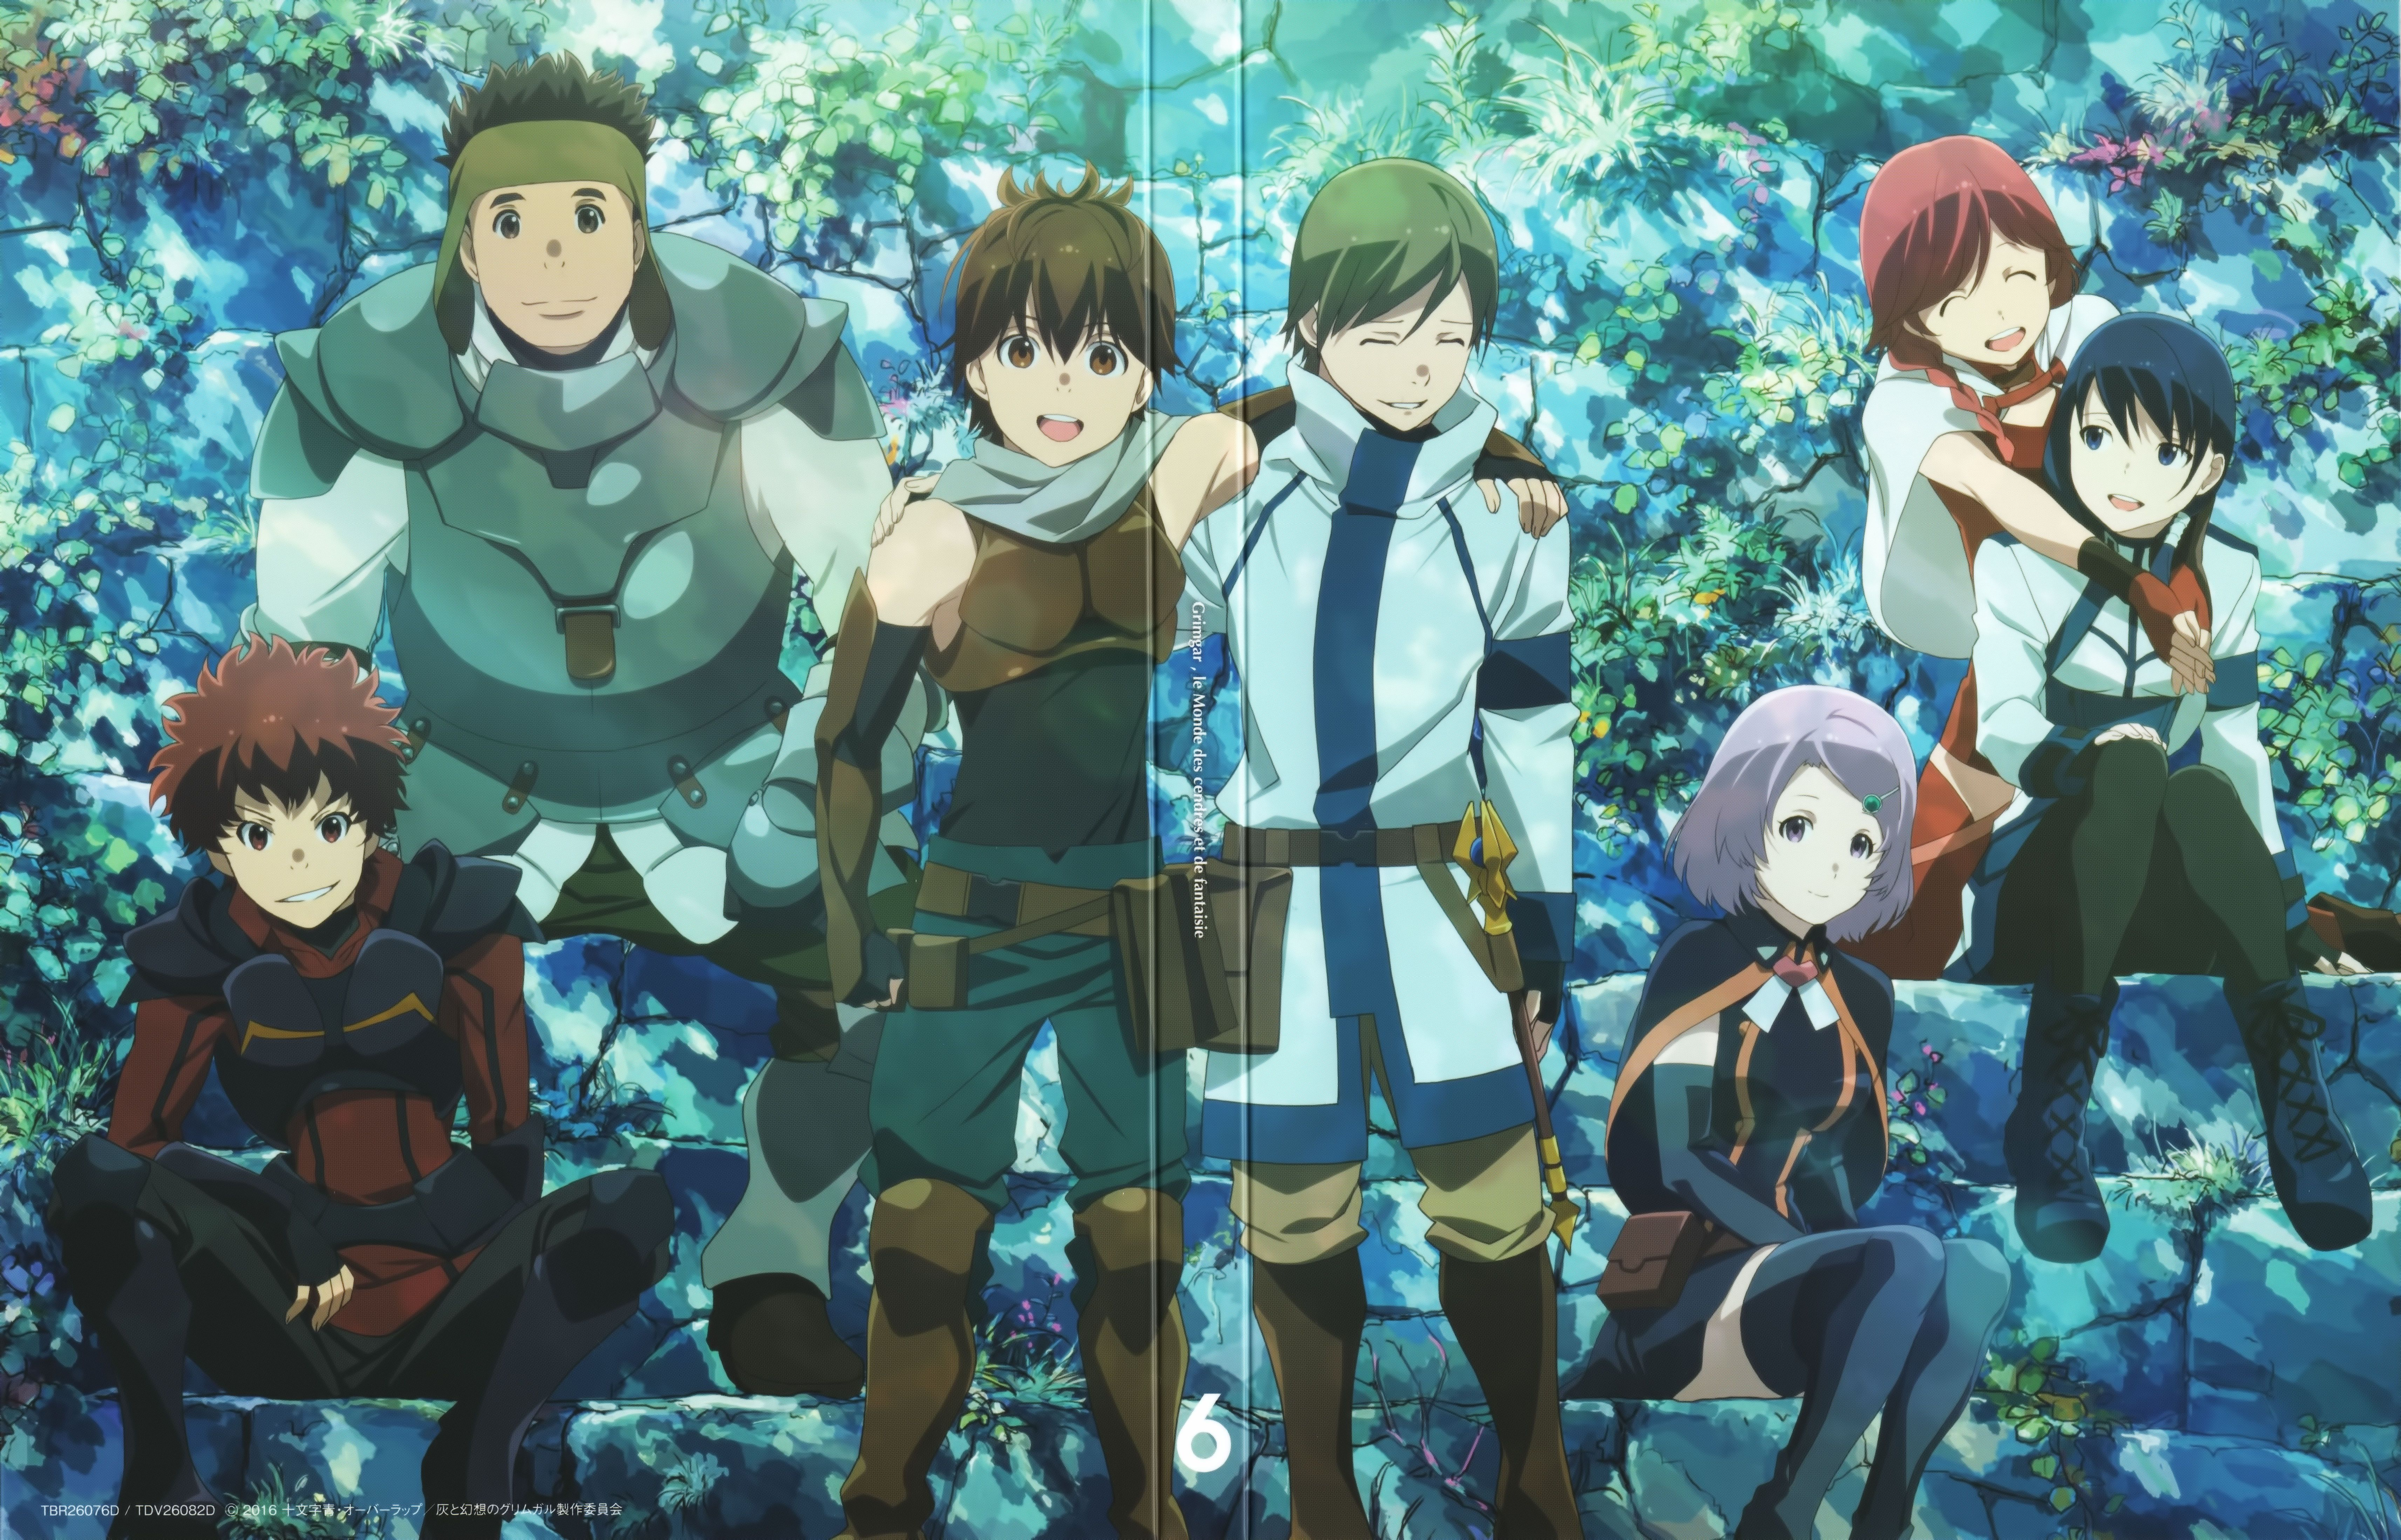 25 Hai To Gensou Grimgar Ideas Anime Manga Anime Fantasy